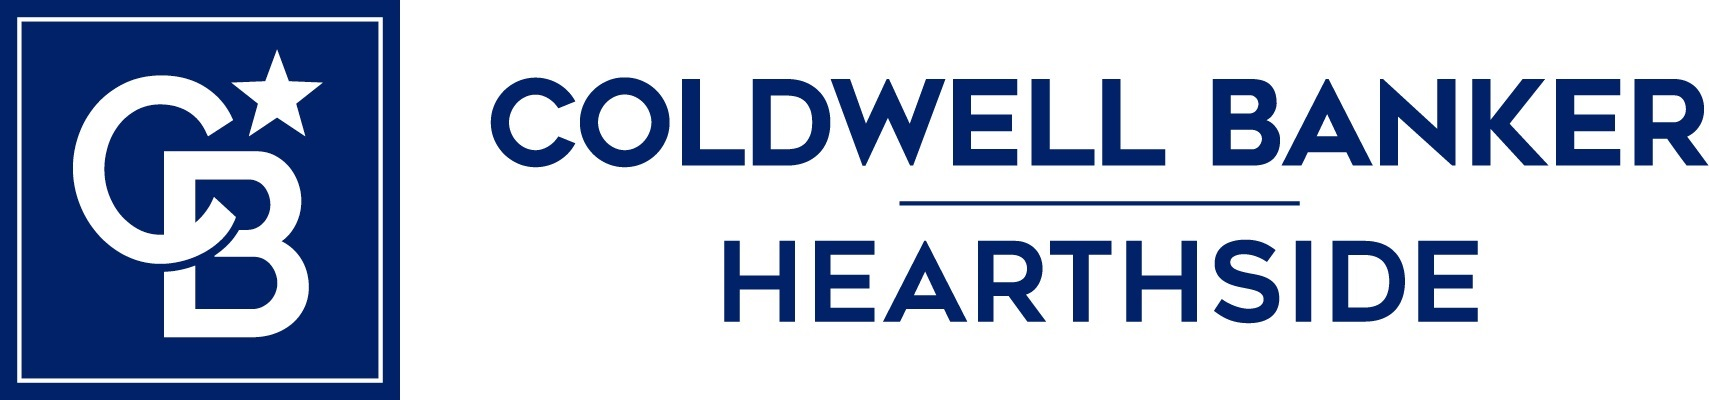 Patty Menow - Coldwell Banker Hearthside